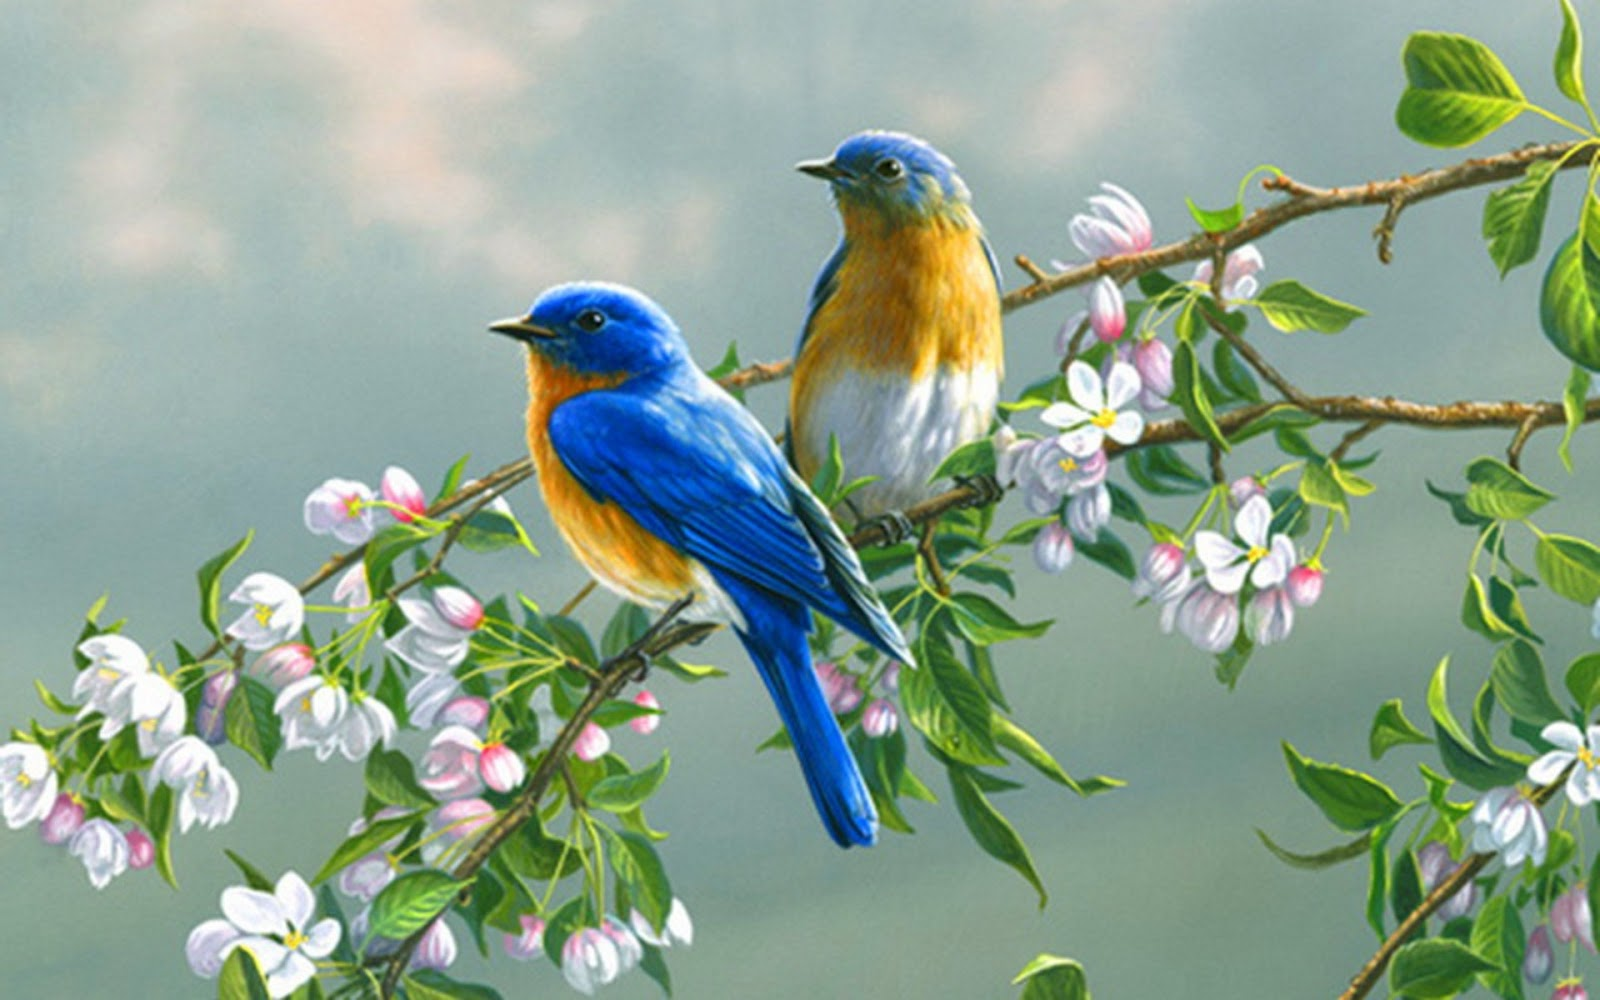 Flowers for flower lovers flowers and birds beautiful wallpapers flowers and birds beautiful wallpapers izmirmasajfo